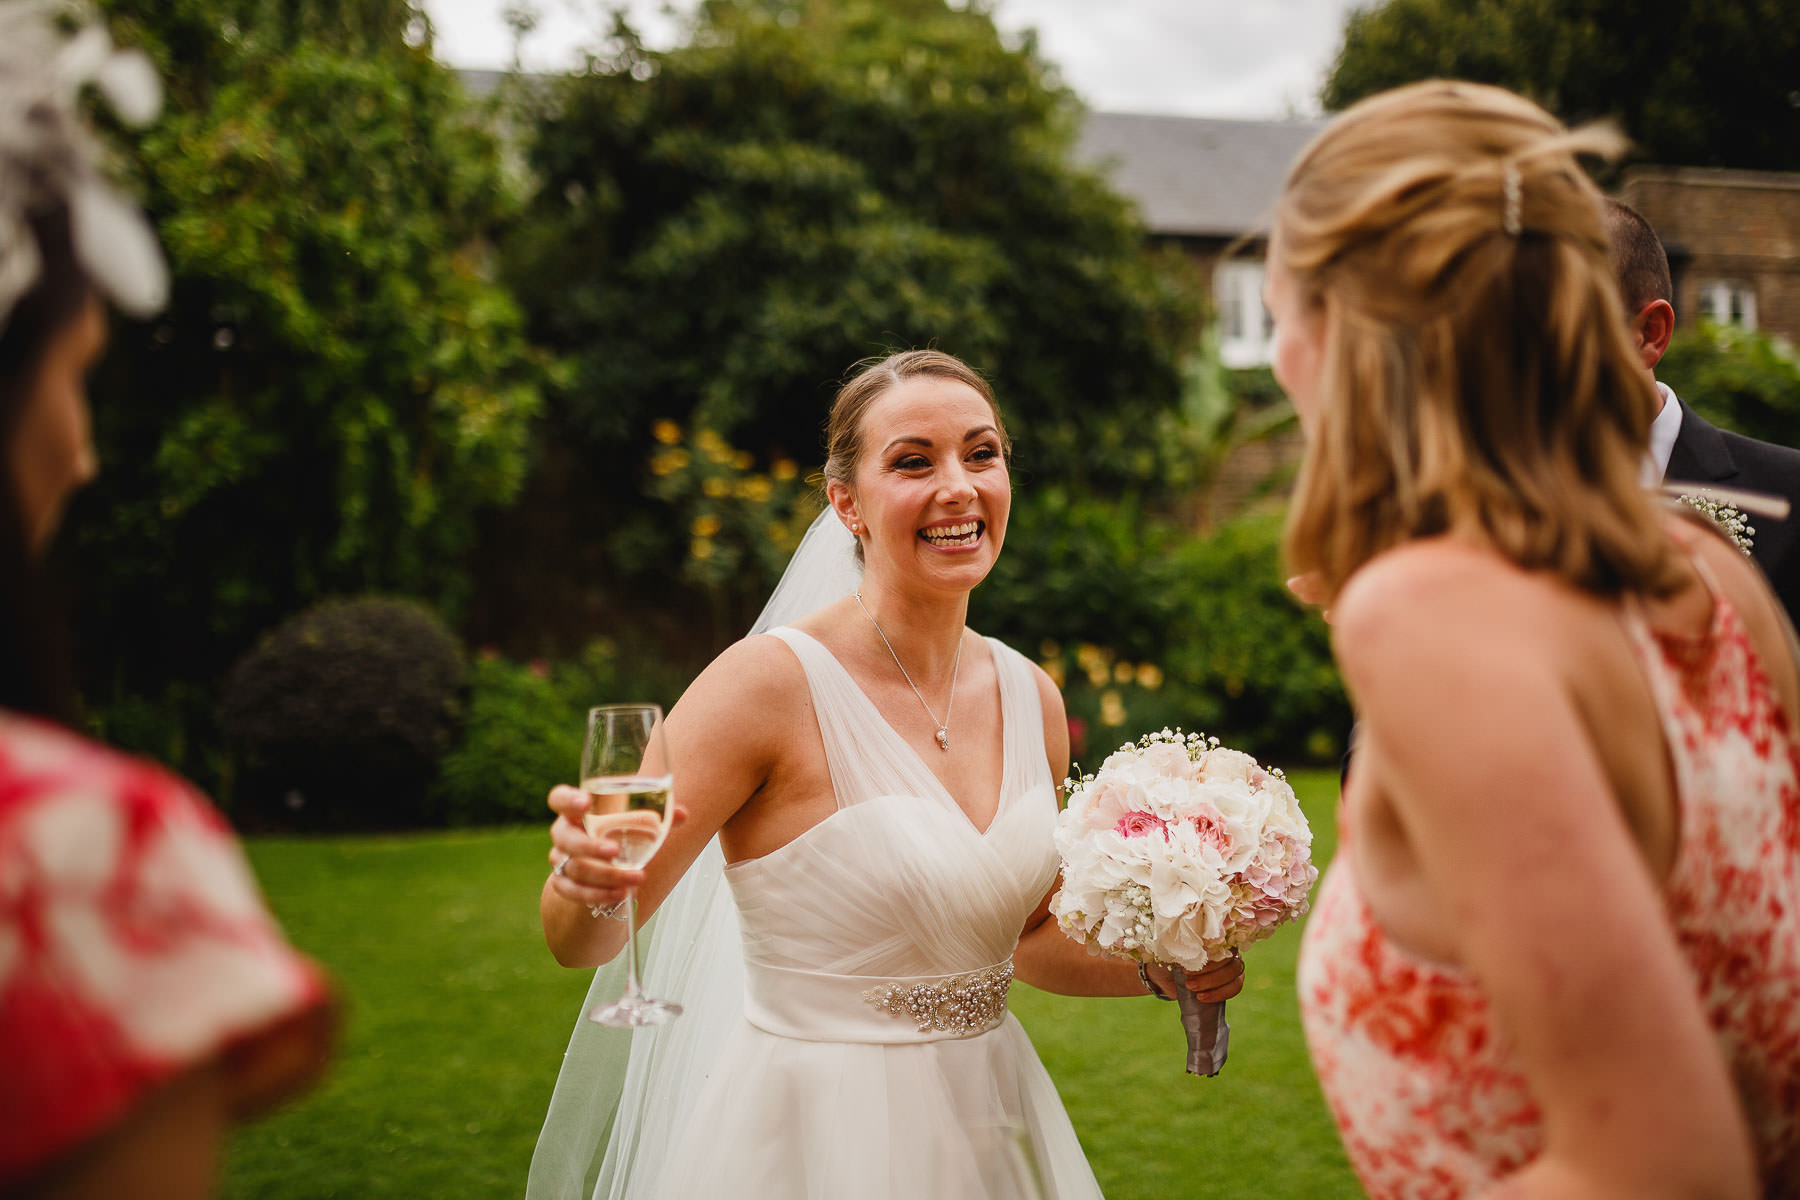 kew gardens wedding photography astra duncan27